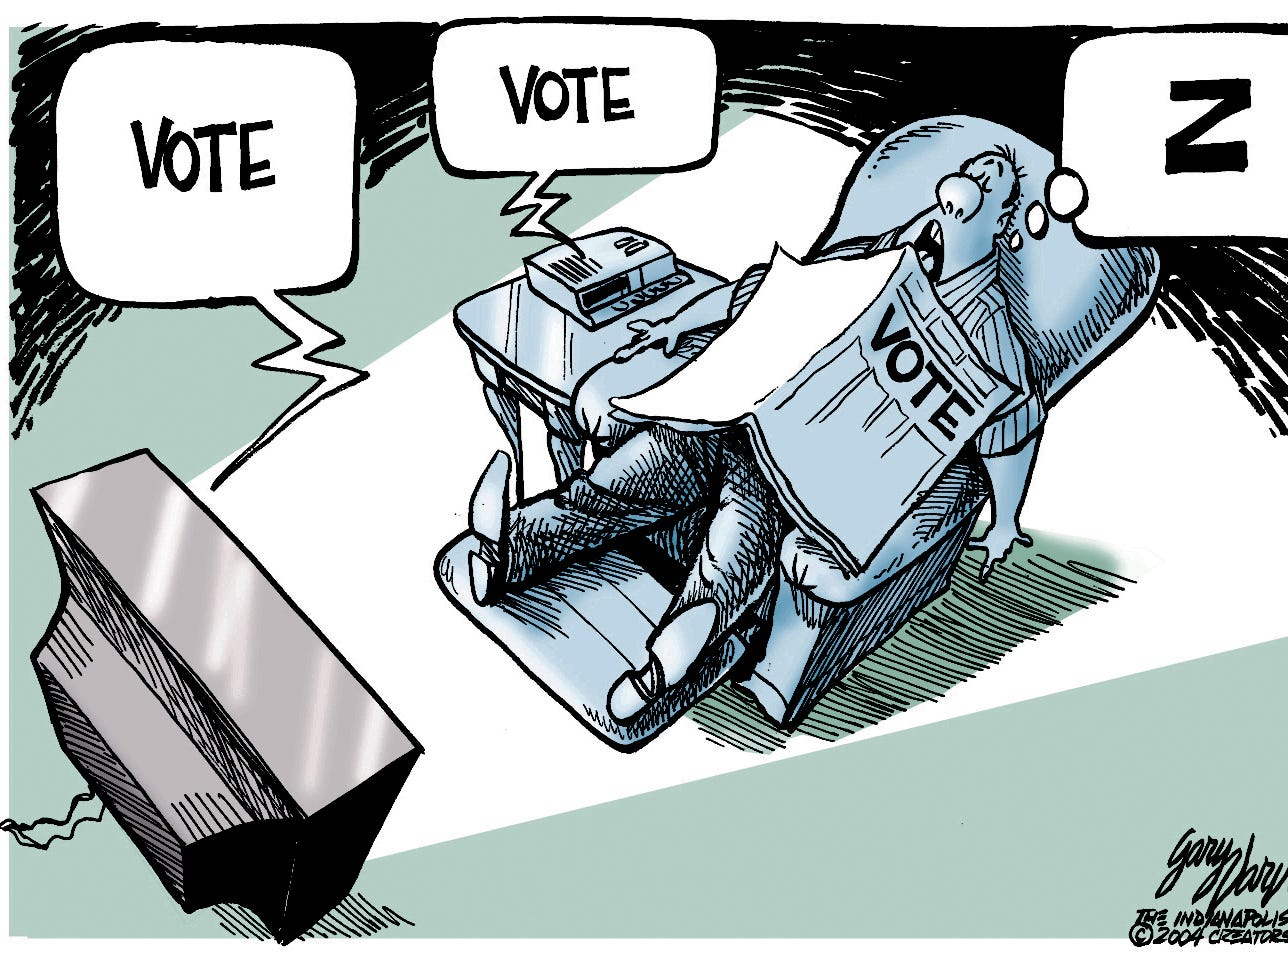 Voter apathy is alway a problem.